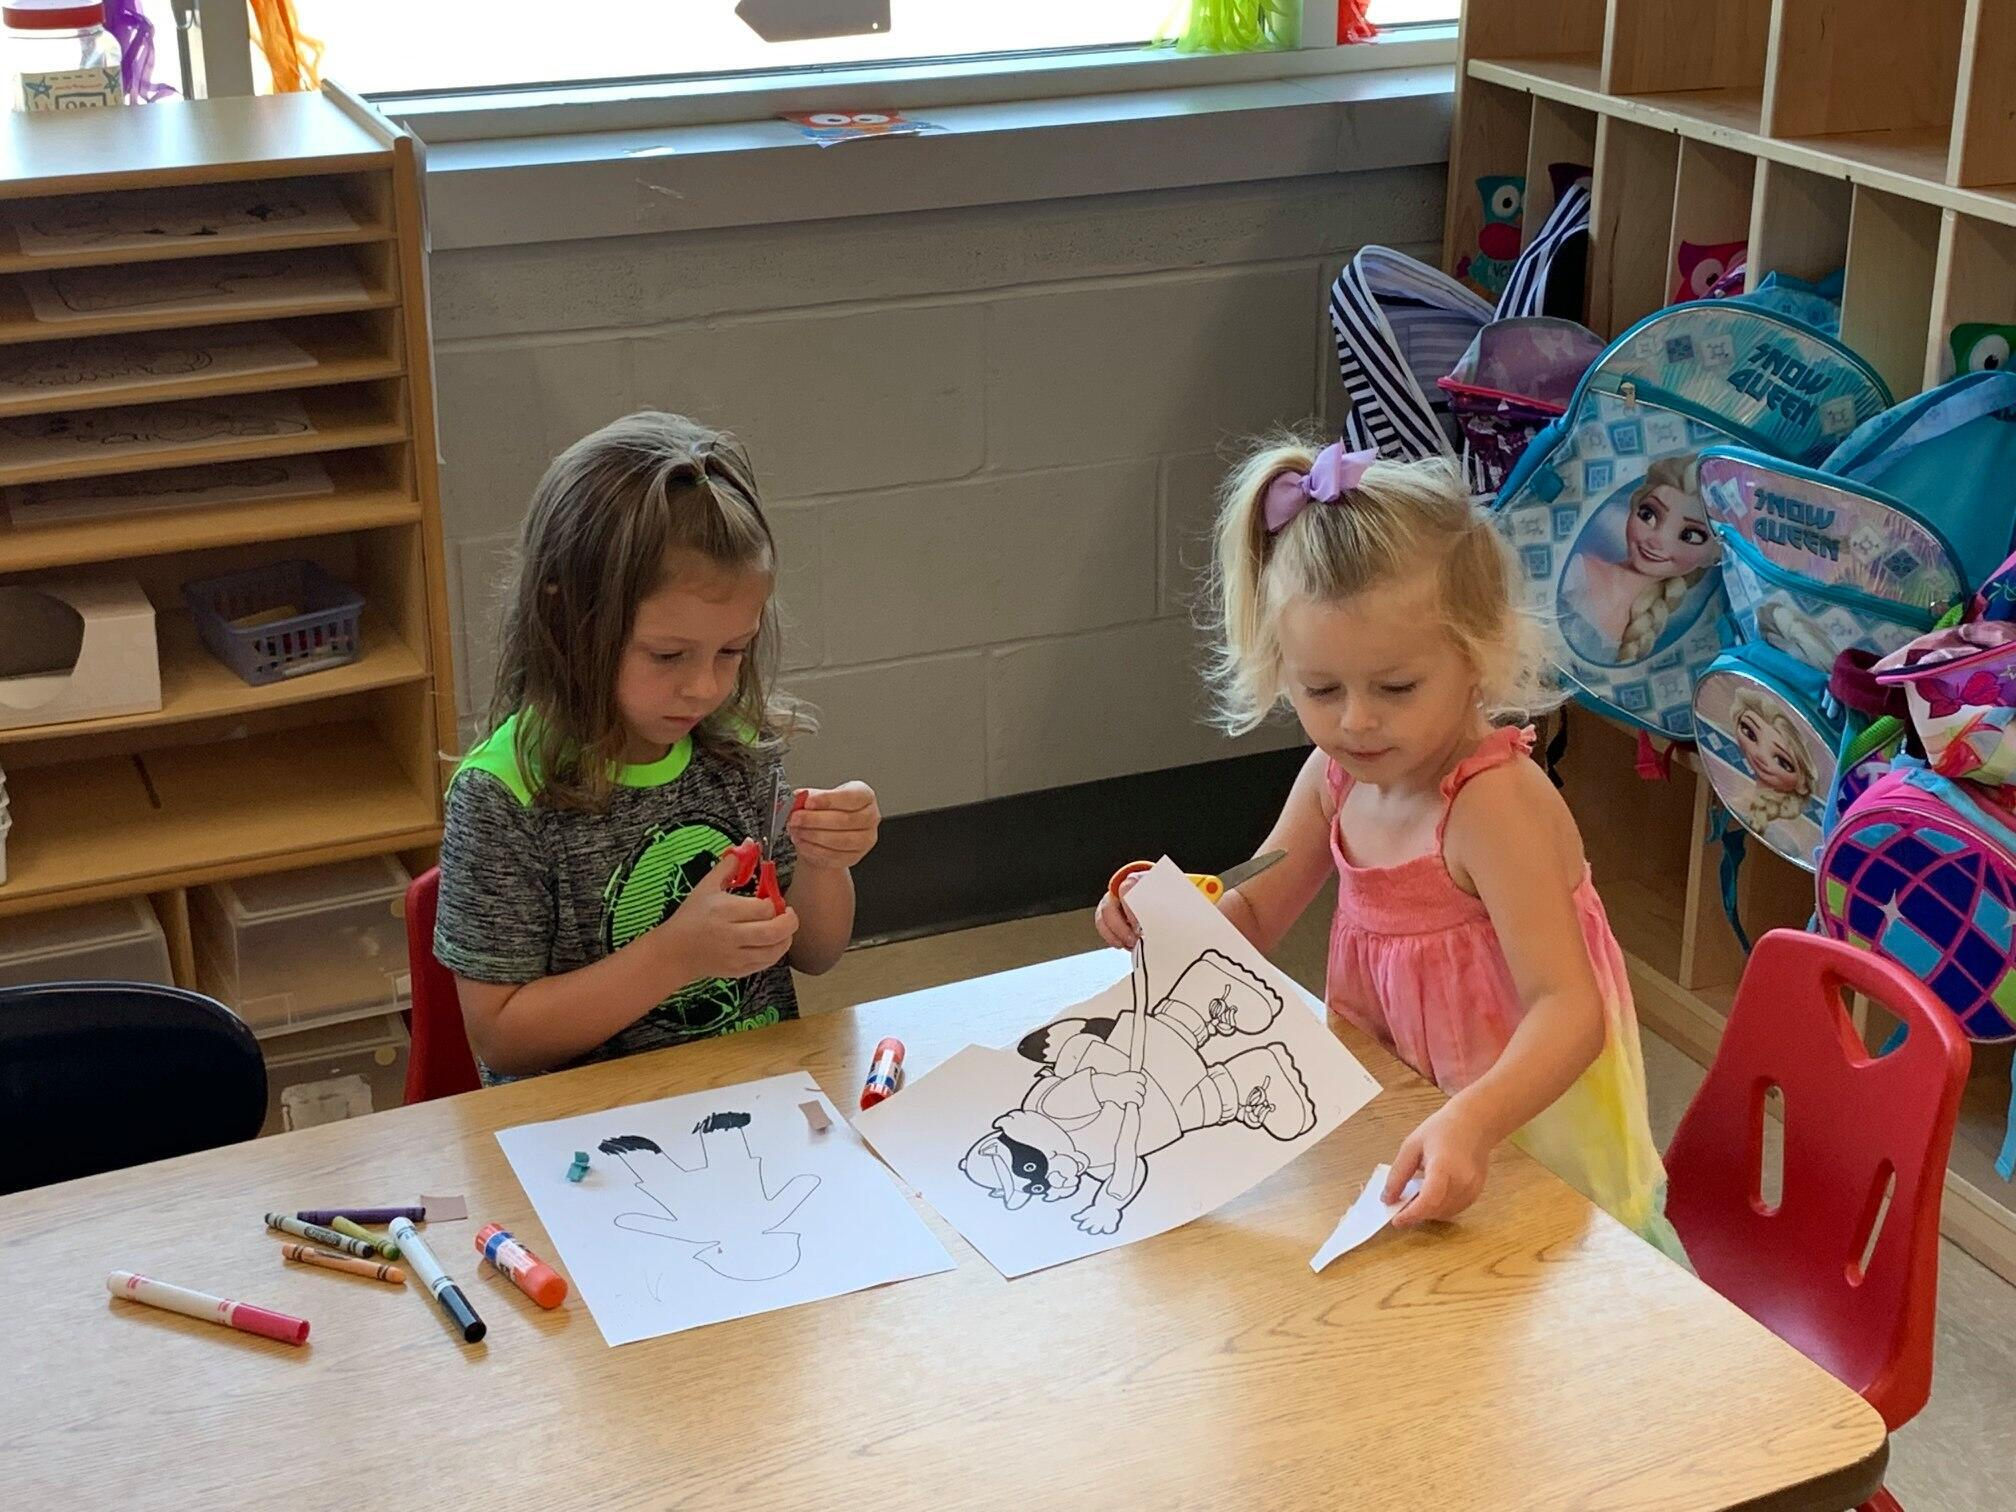 Two preschool aged girls sit together at table sharing markers and working on pictures.